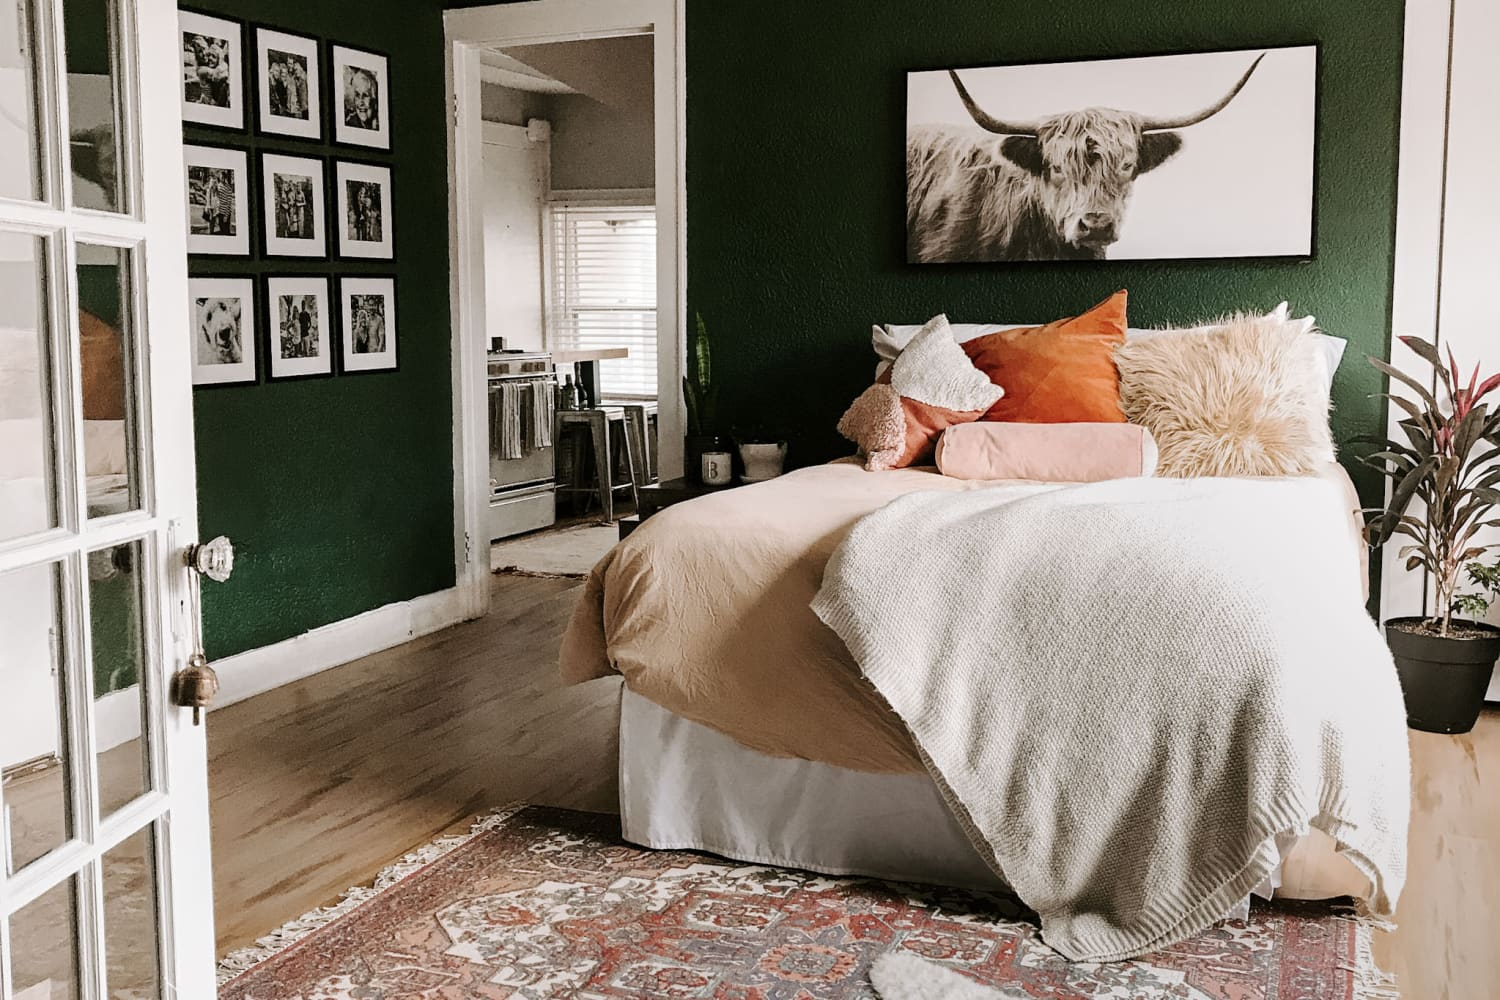 A 500-Square-Foot Attic Apartment in an Old, Historic House Is an Adorable Home for an Artist